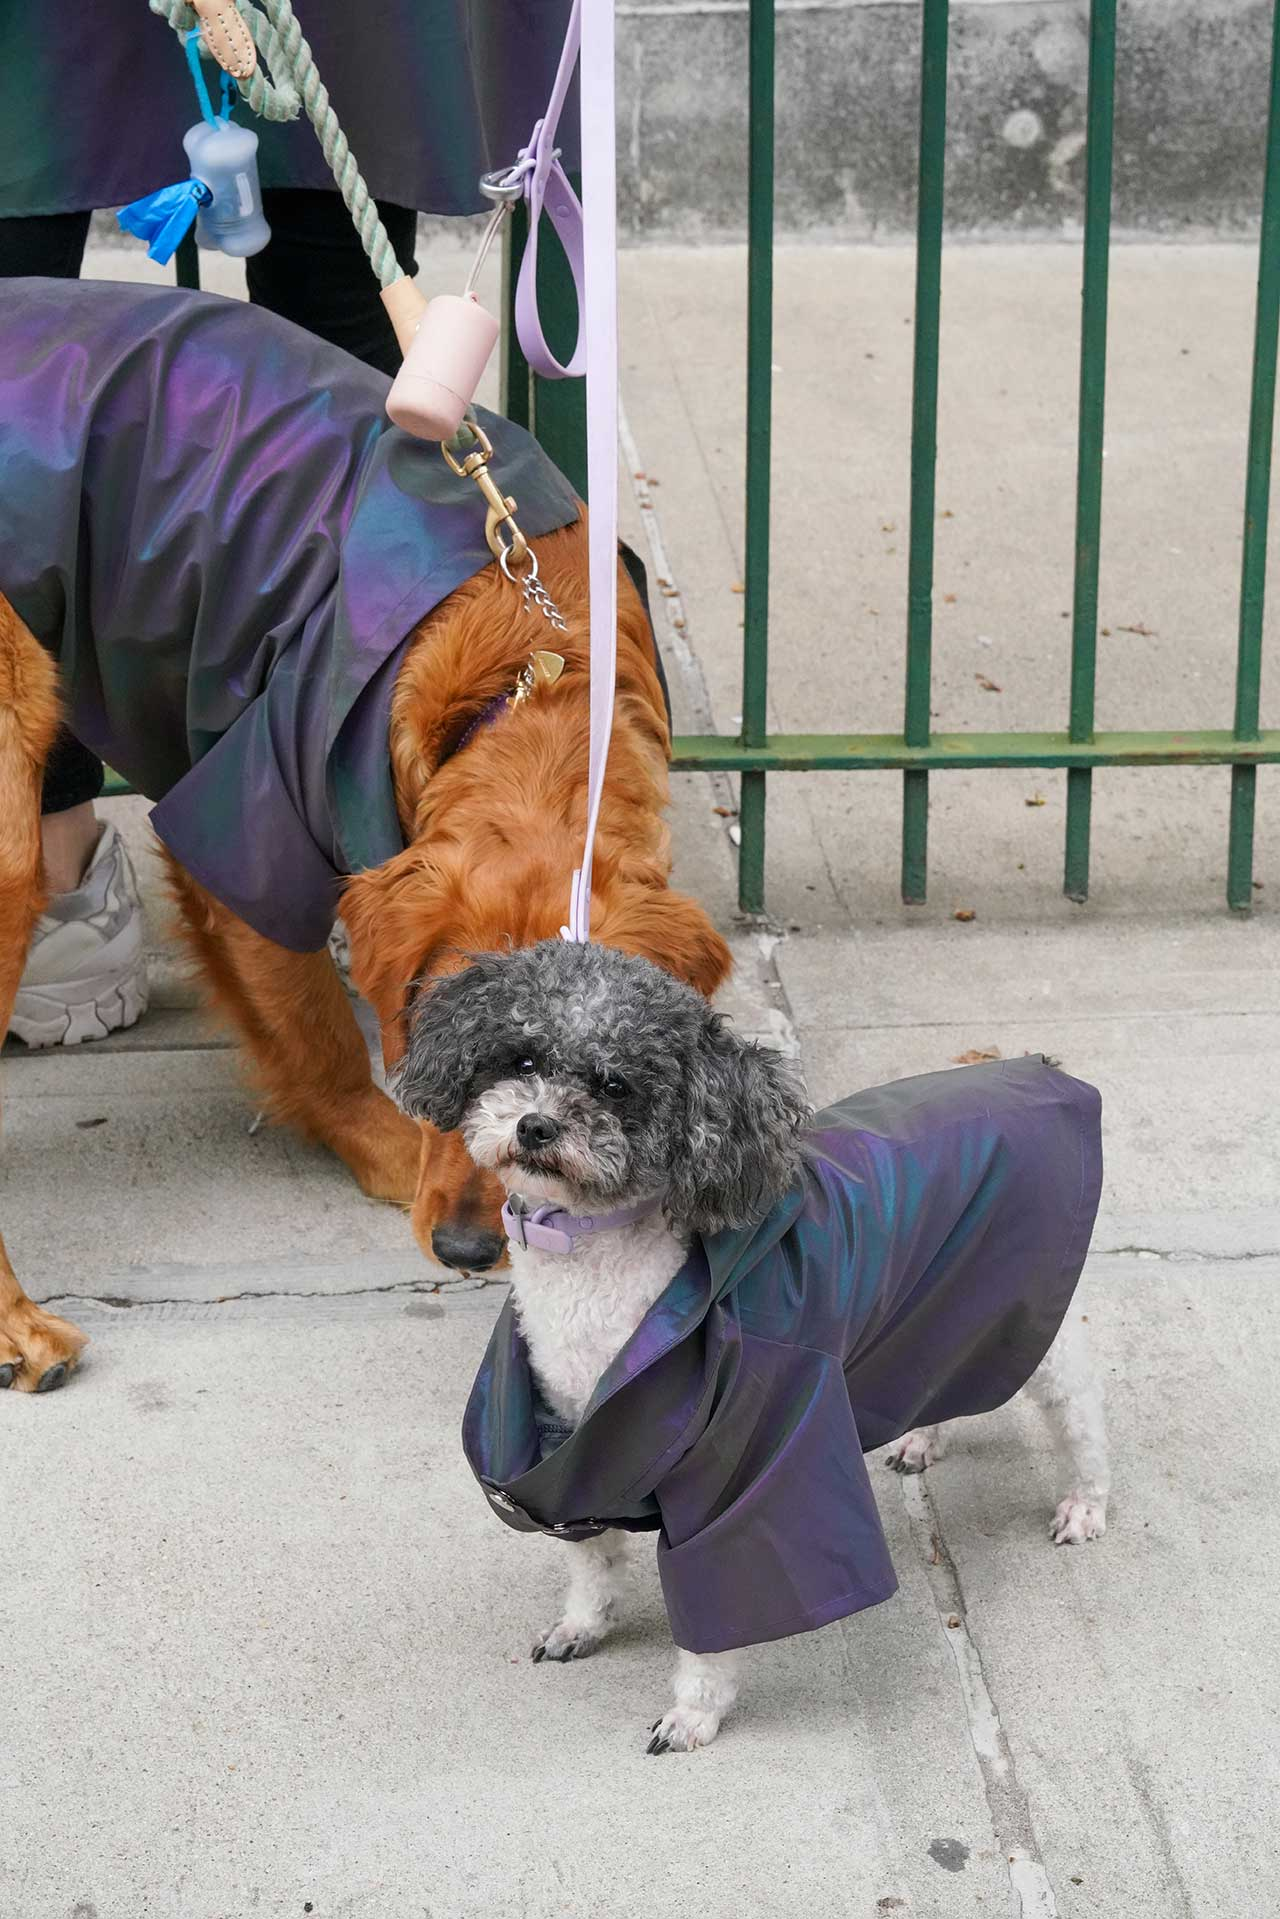 dogs on the street in matching raincoats